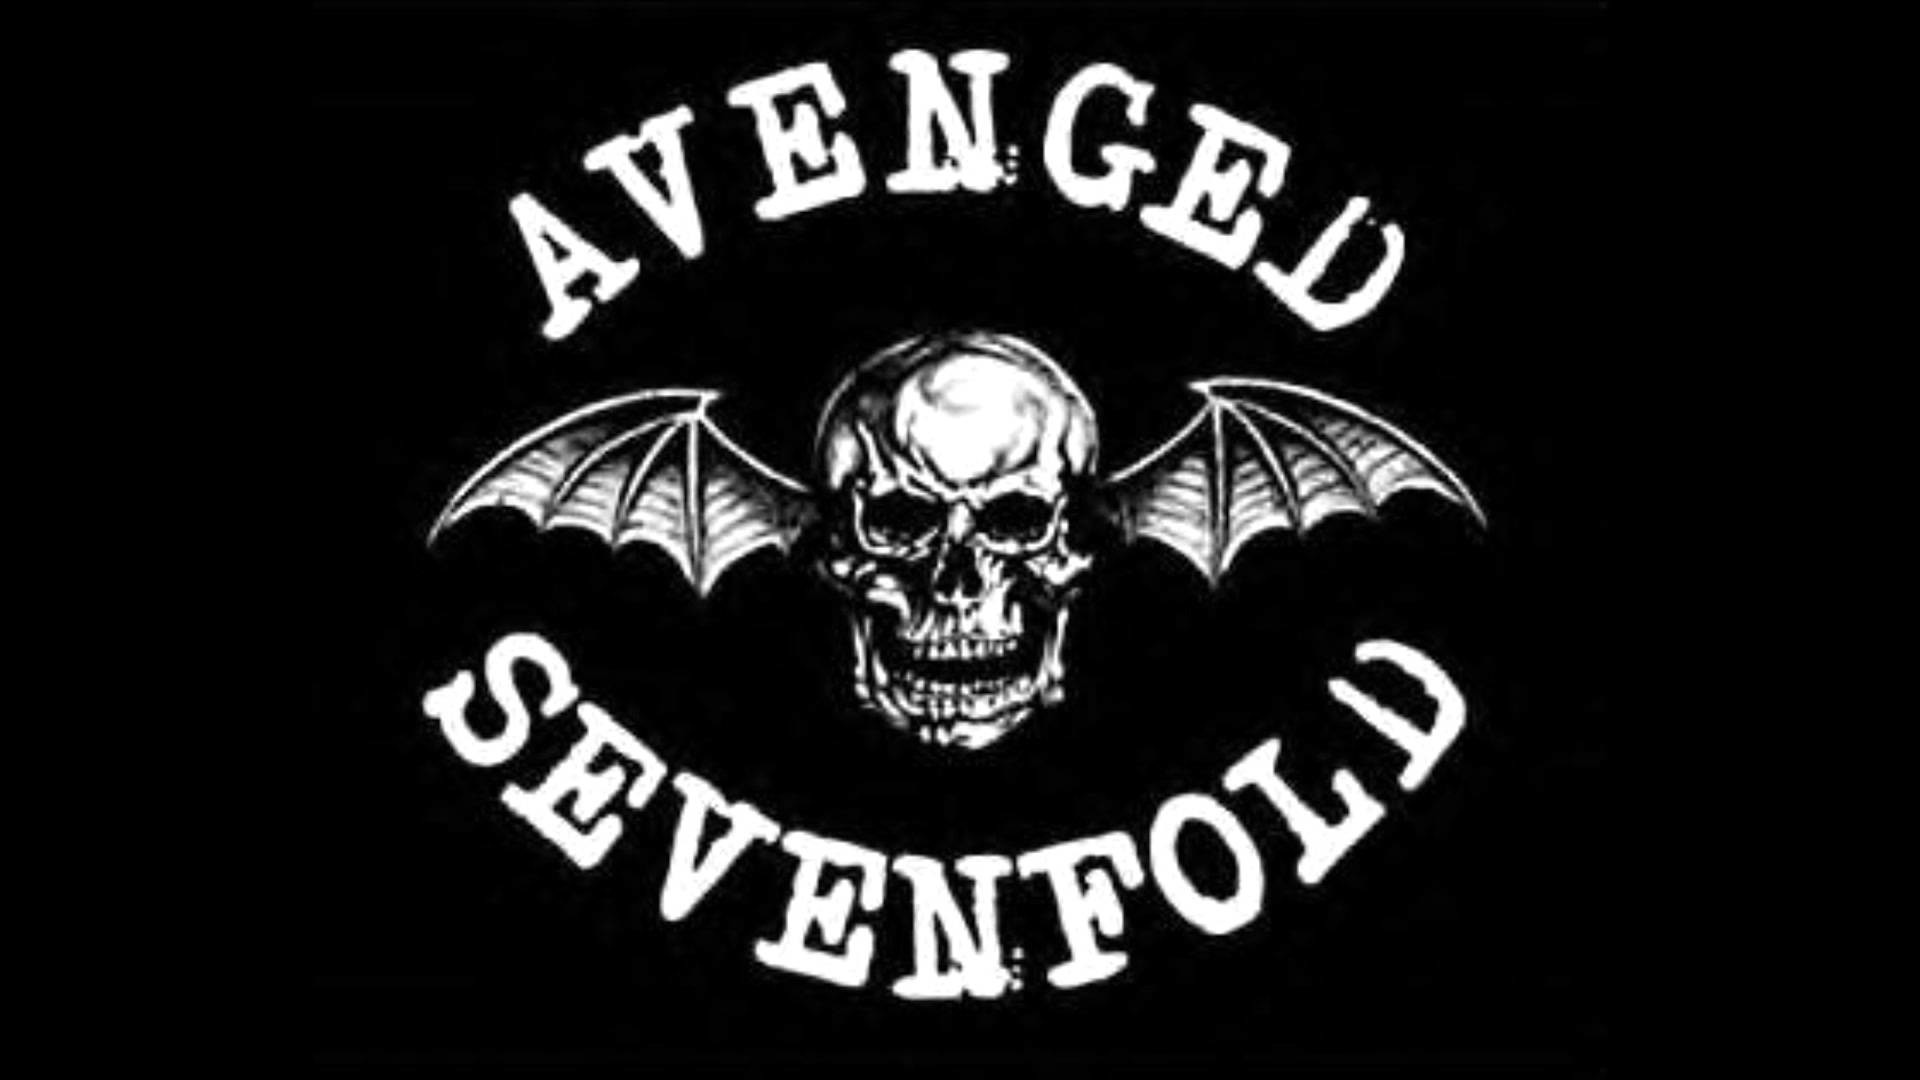 1920x1080 Avenged Sevenfold Nightmare Wallpaper Images